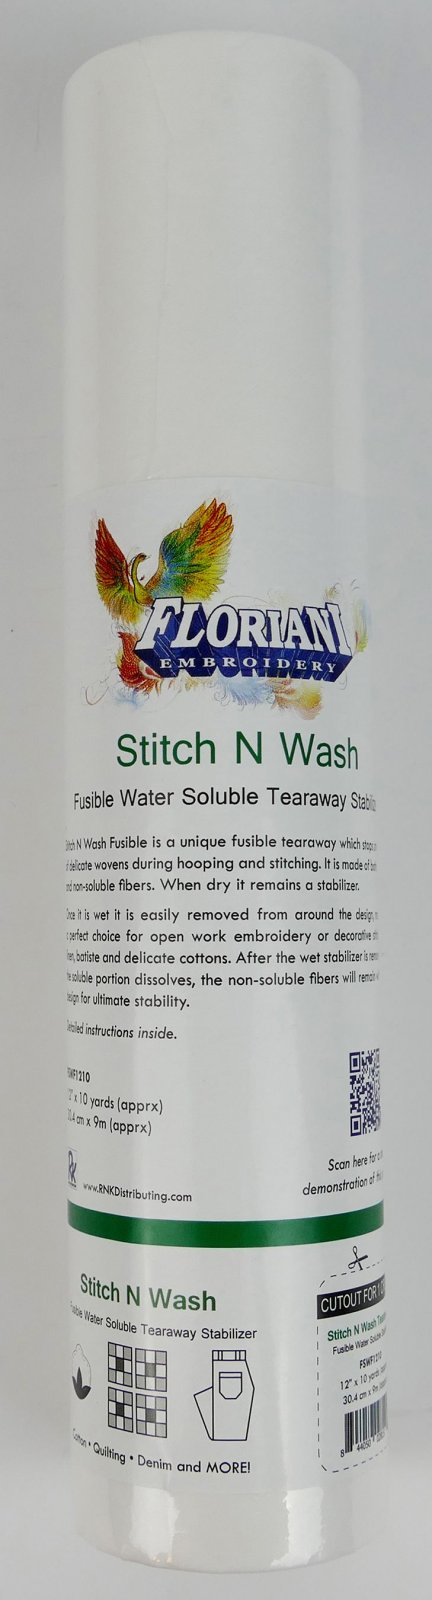 Floriani Stitch N Wash - Fusible Water SolubleTearaway - 12 x 10 yards